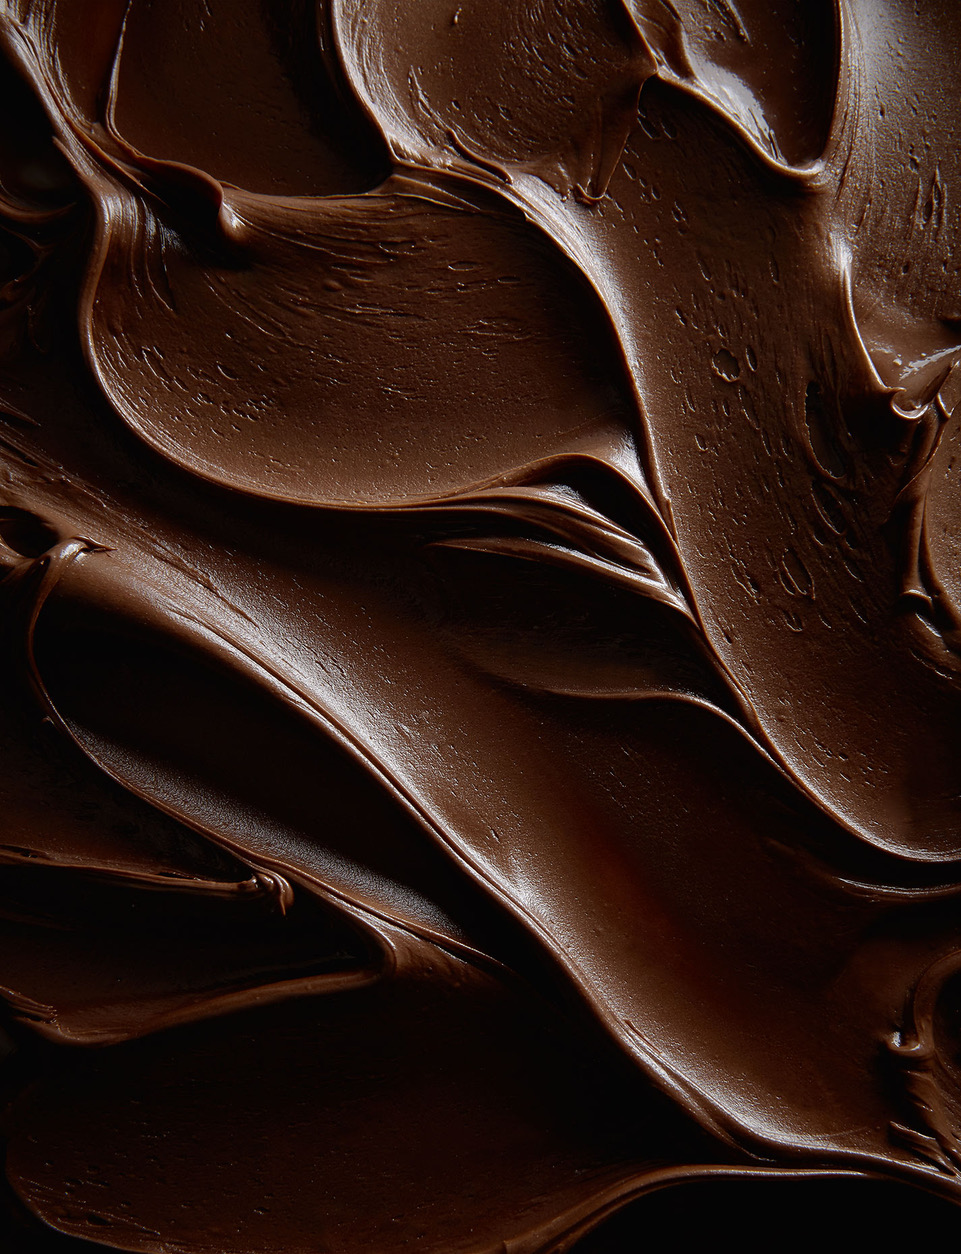 Chocolate_Frosting_Whip_2_2017_1065